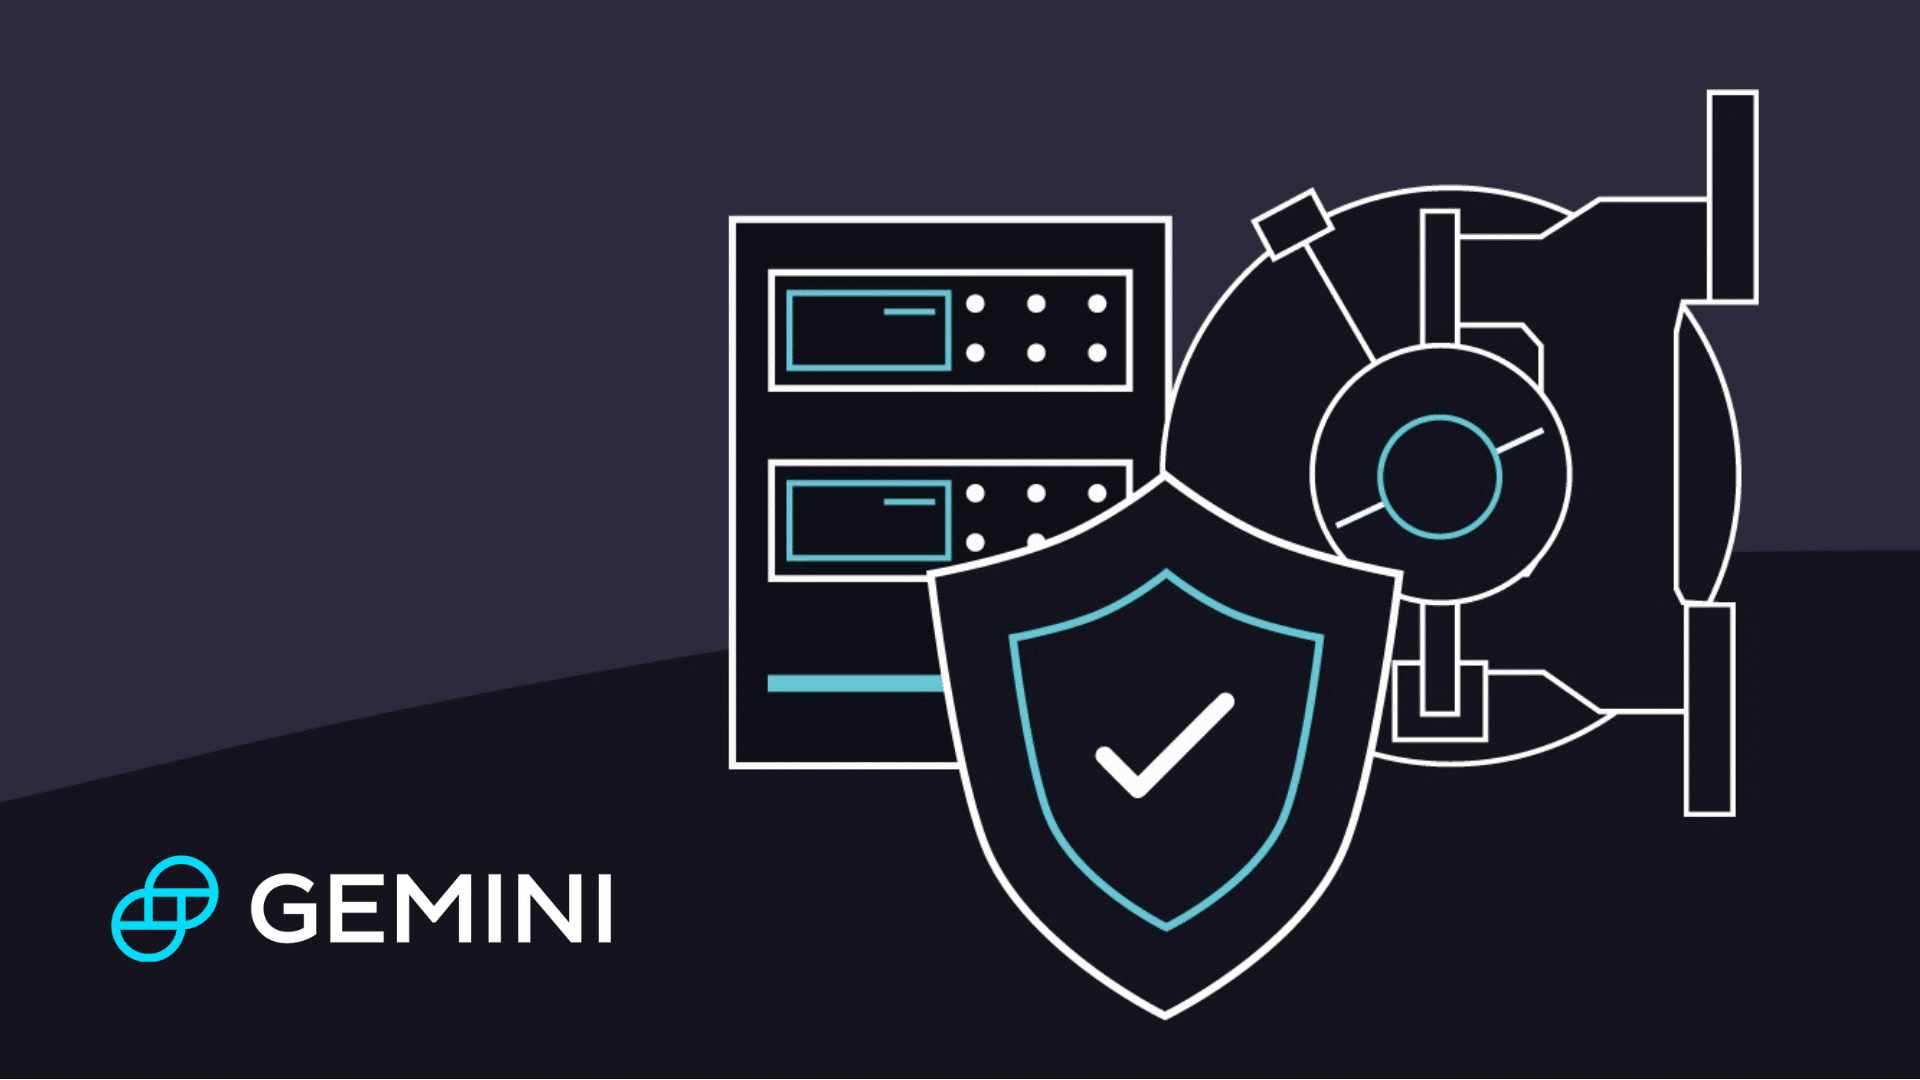 gemini cryptocurrency exchanges